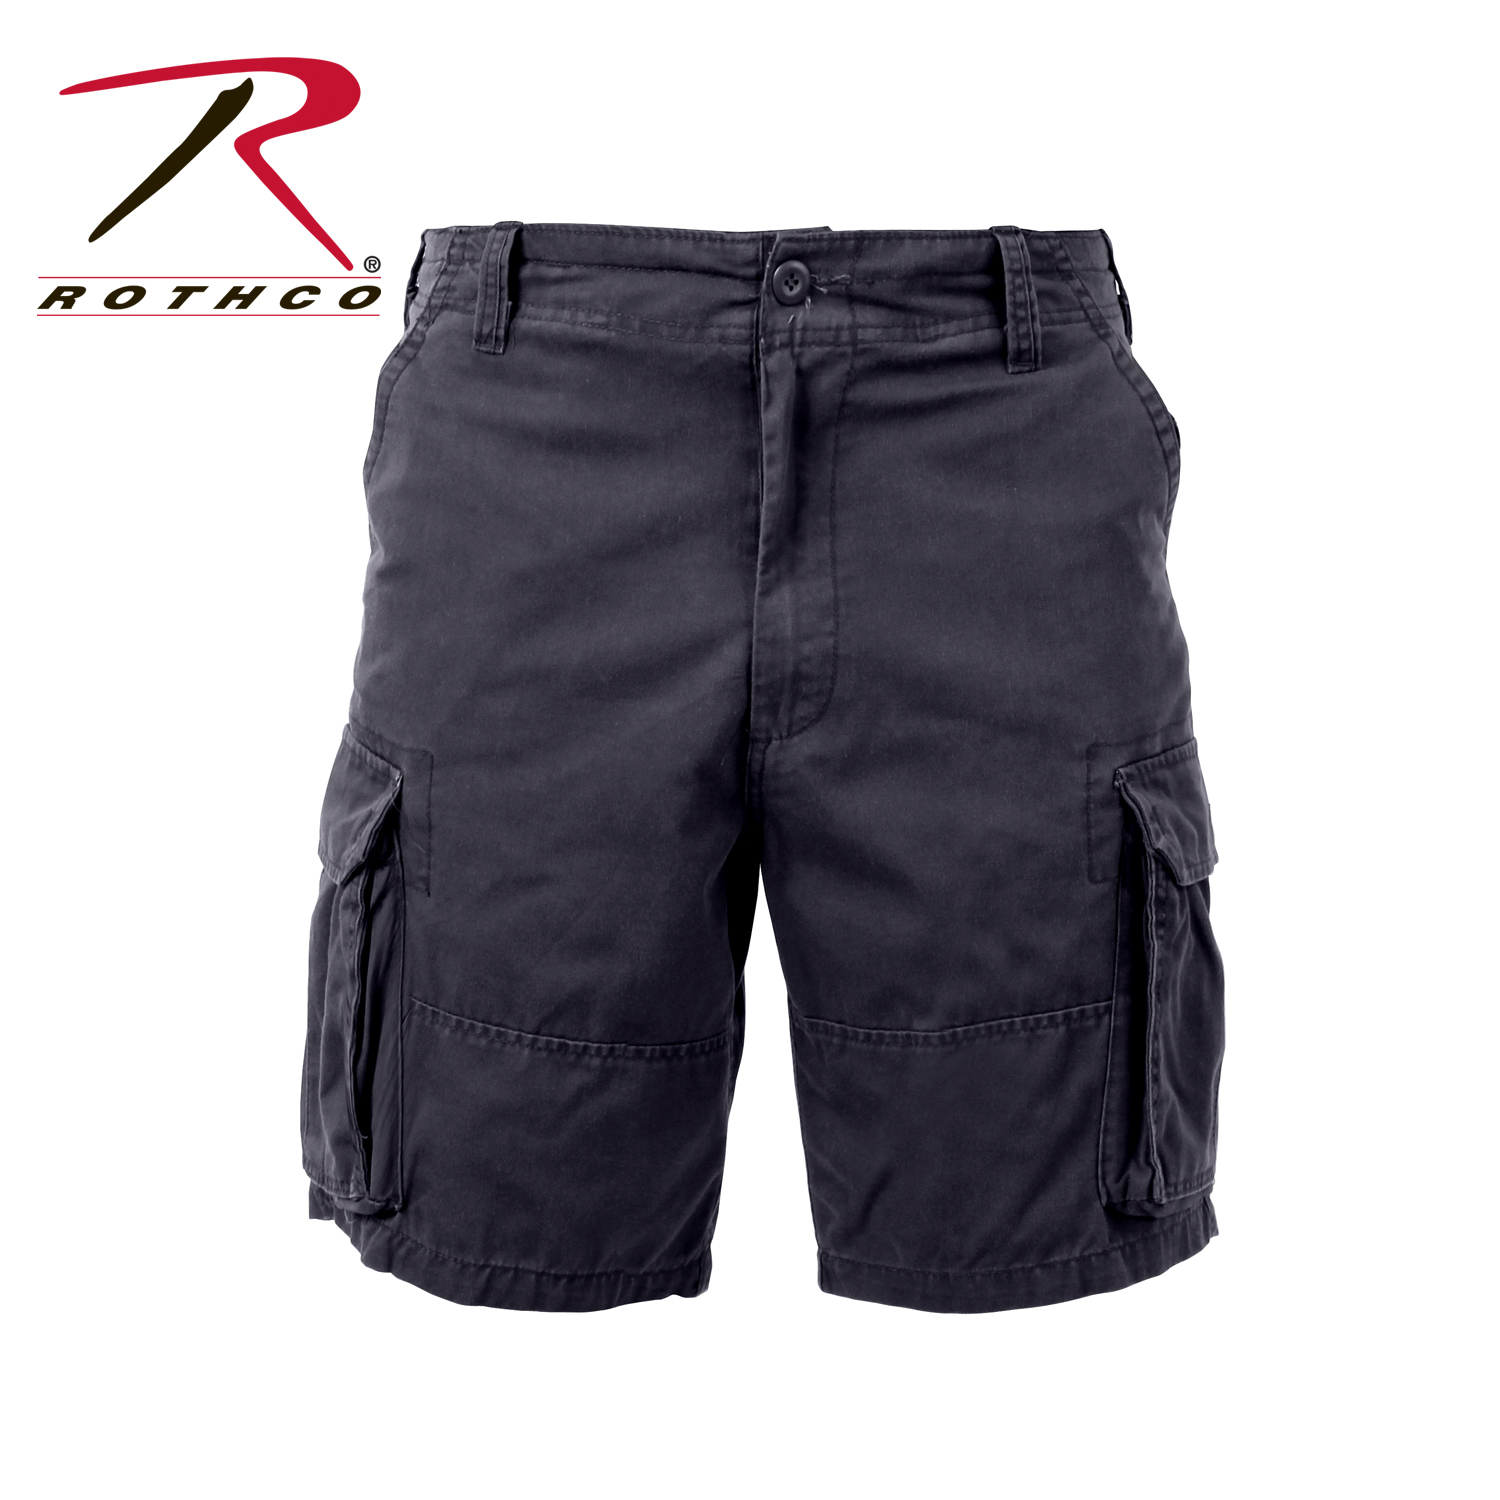 77610441a4 Rothco Vintage Solid Paratrooper Cargo Short